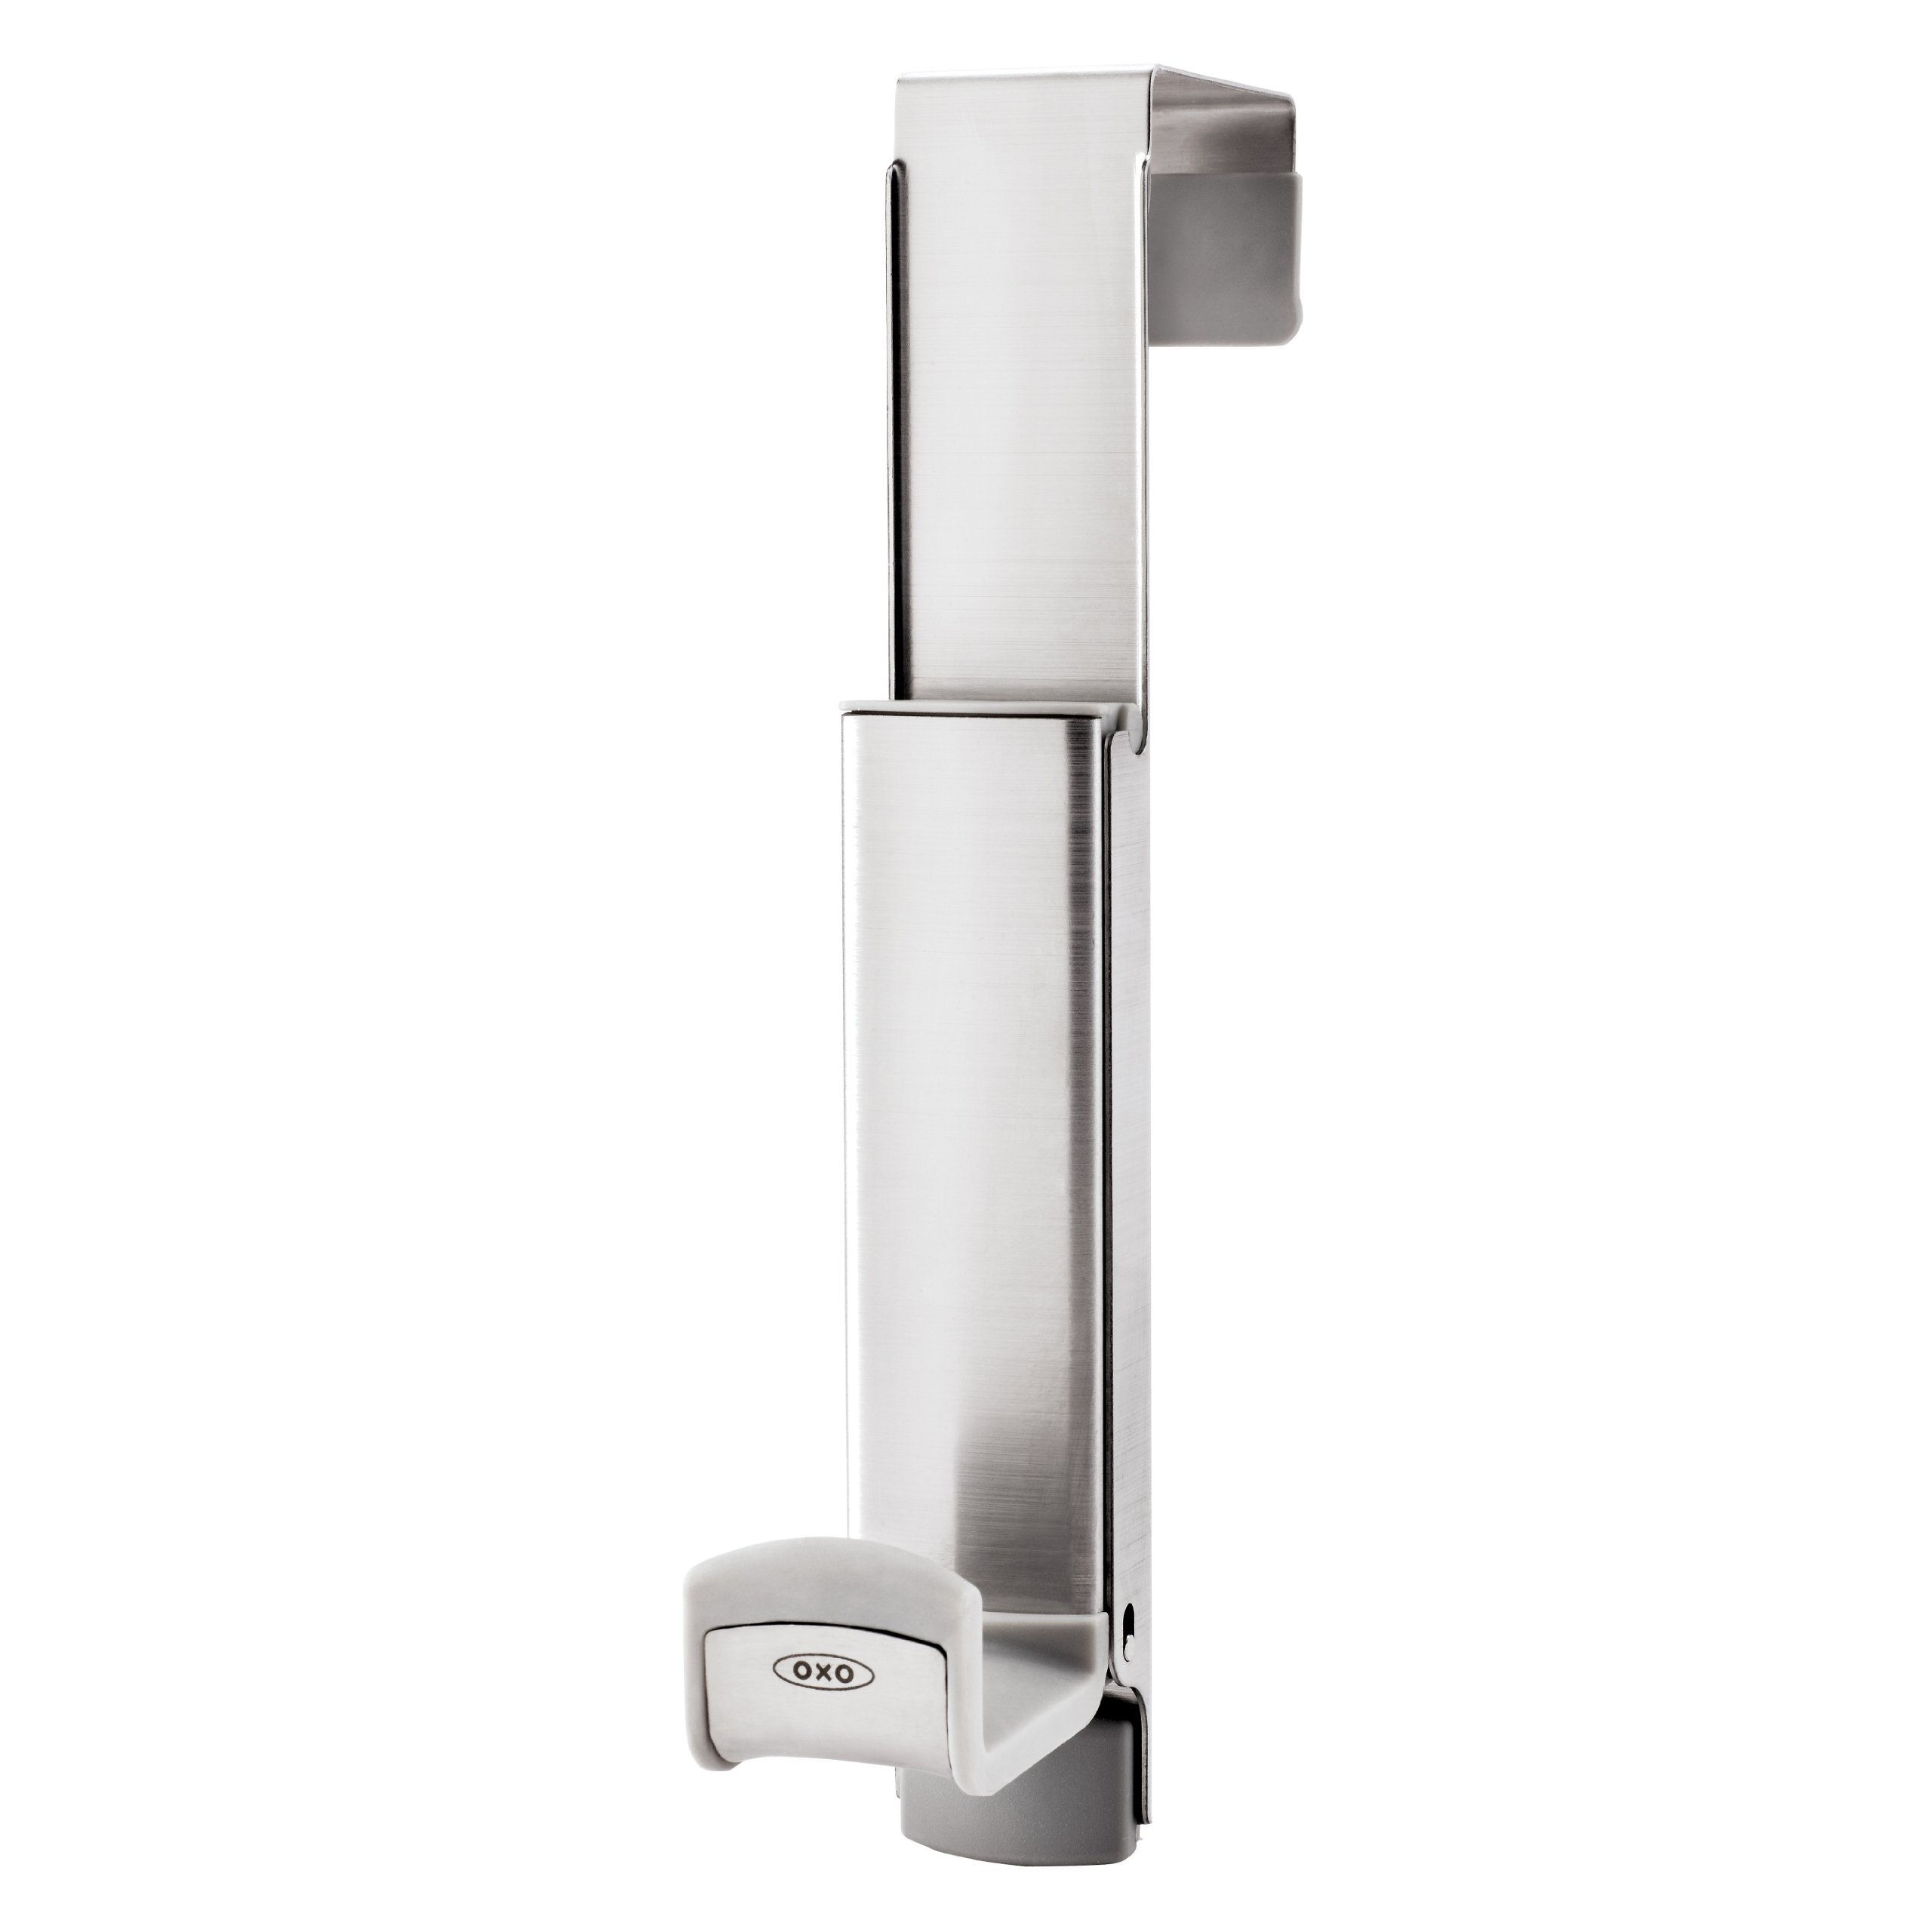 OXO Good Grips Stainless Steel Over-the-Door Folding Hook by OXO